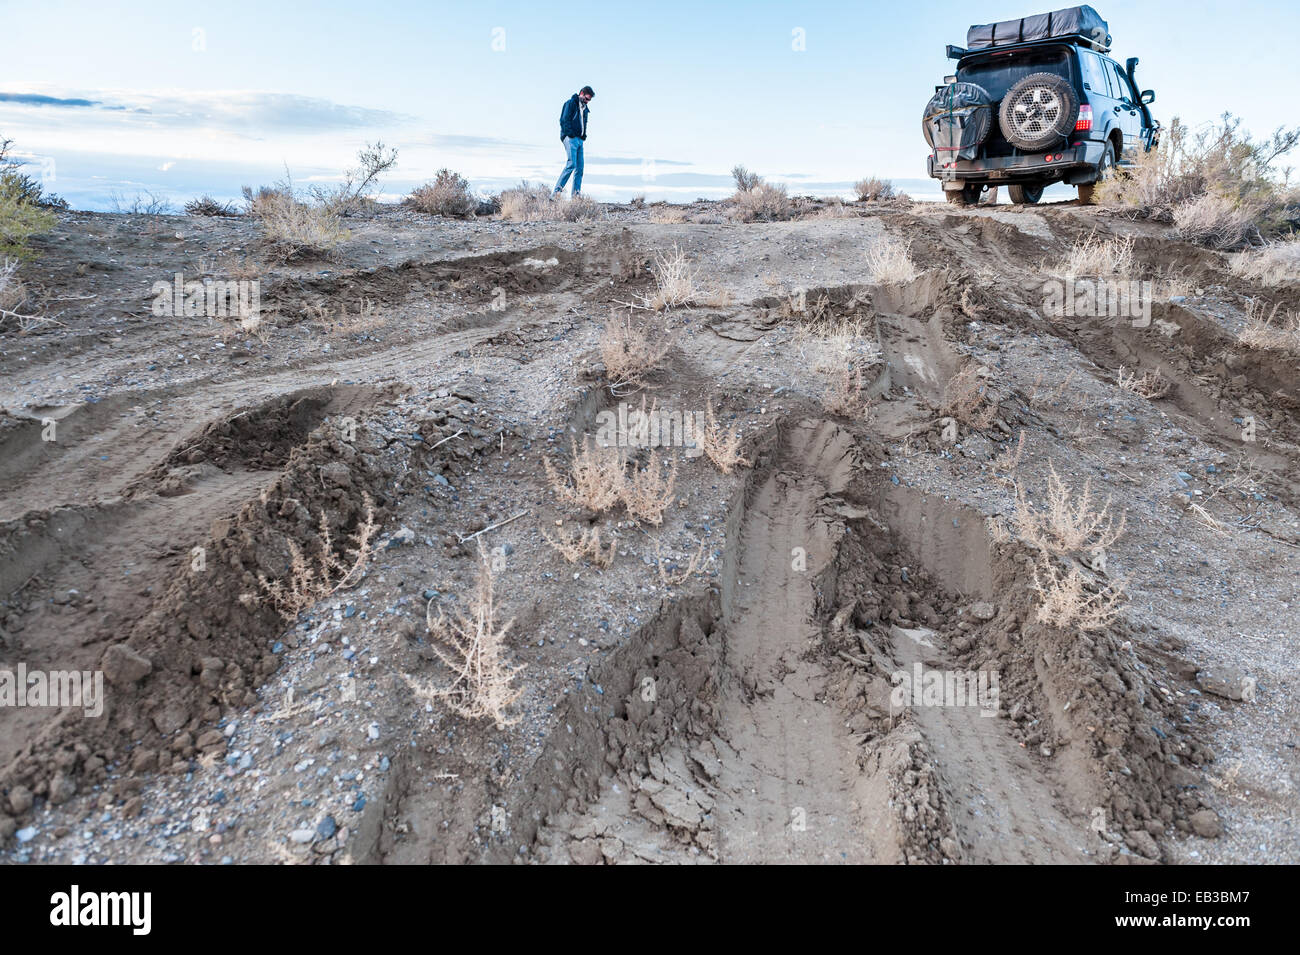 Man checking road conditions on muddy track, Black rock desert, Nevada, America, USA - Stock Image